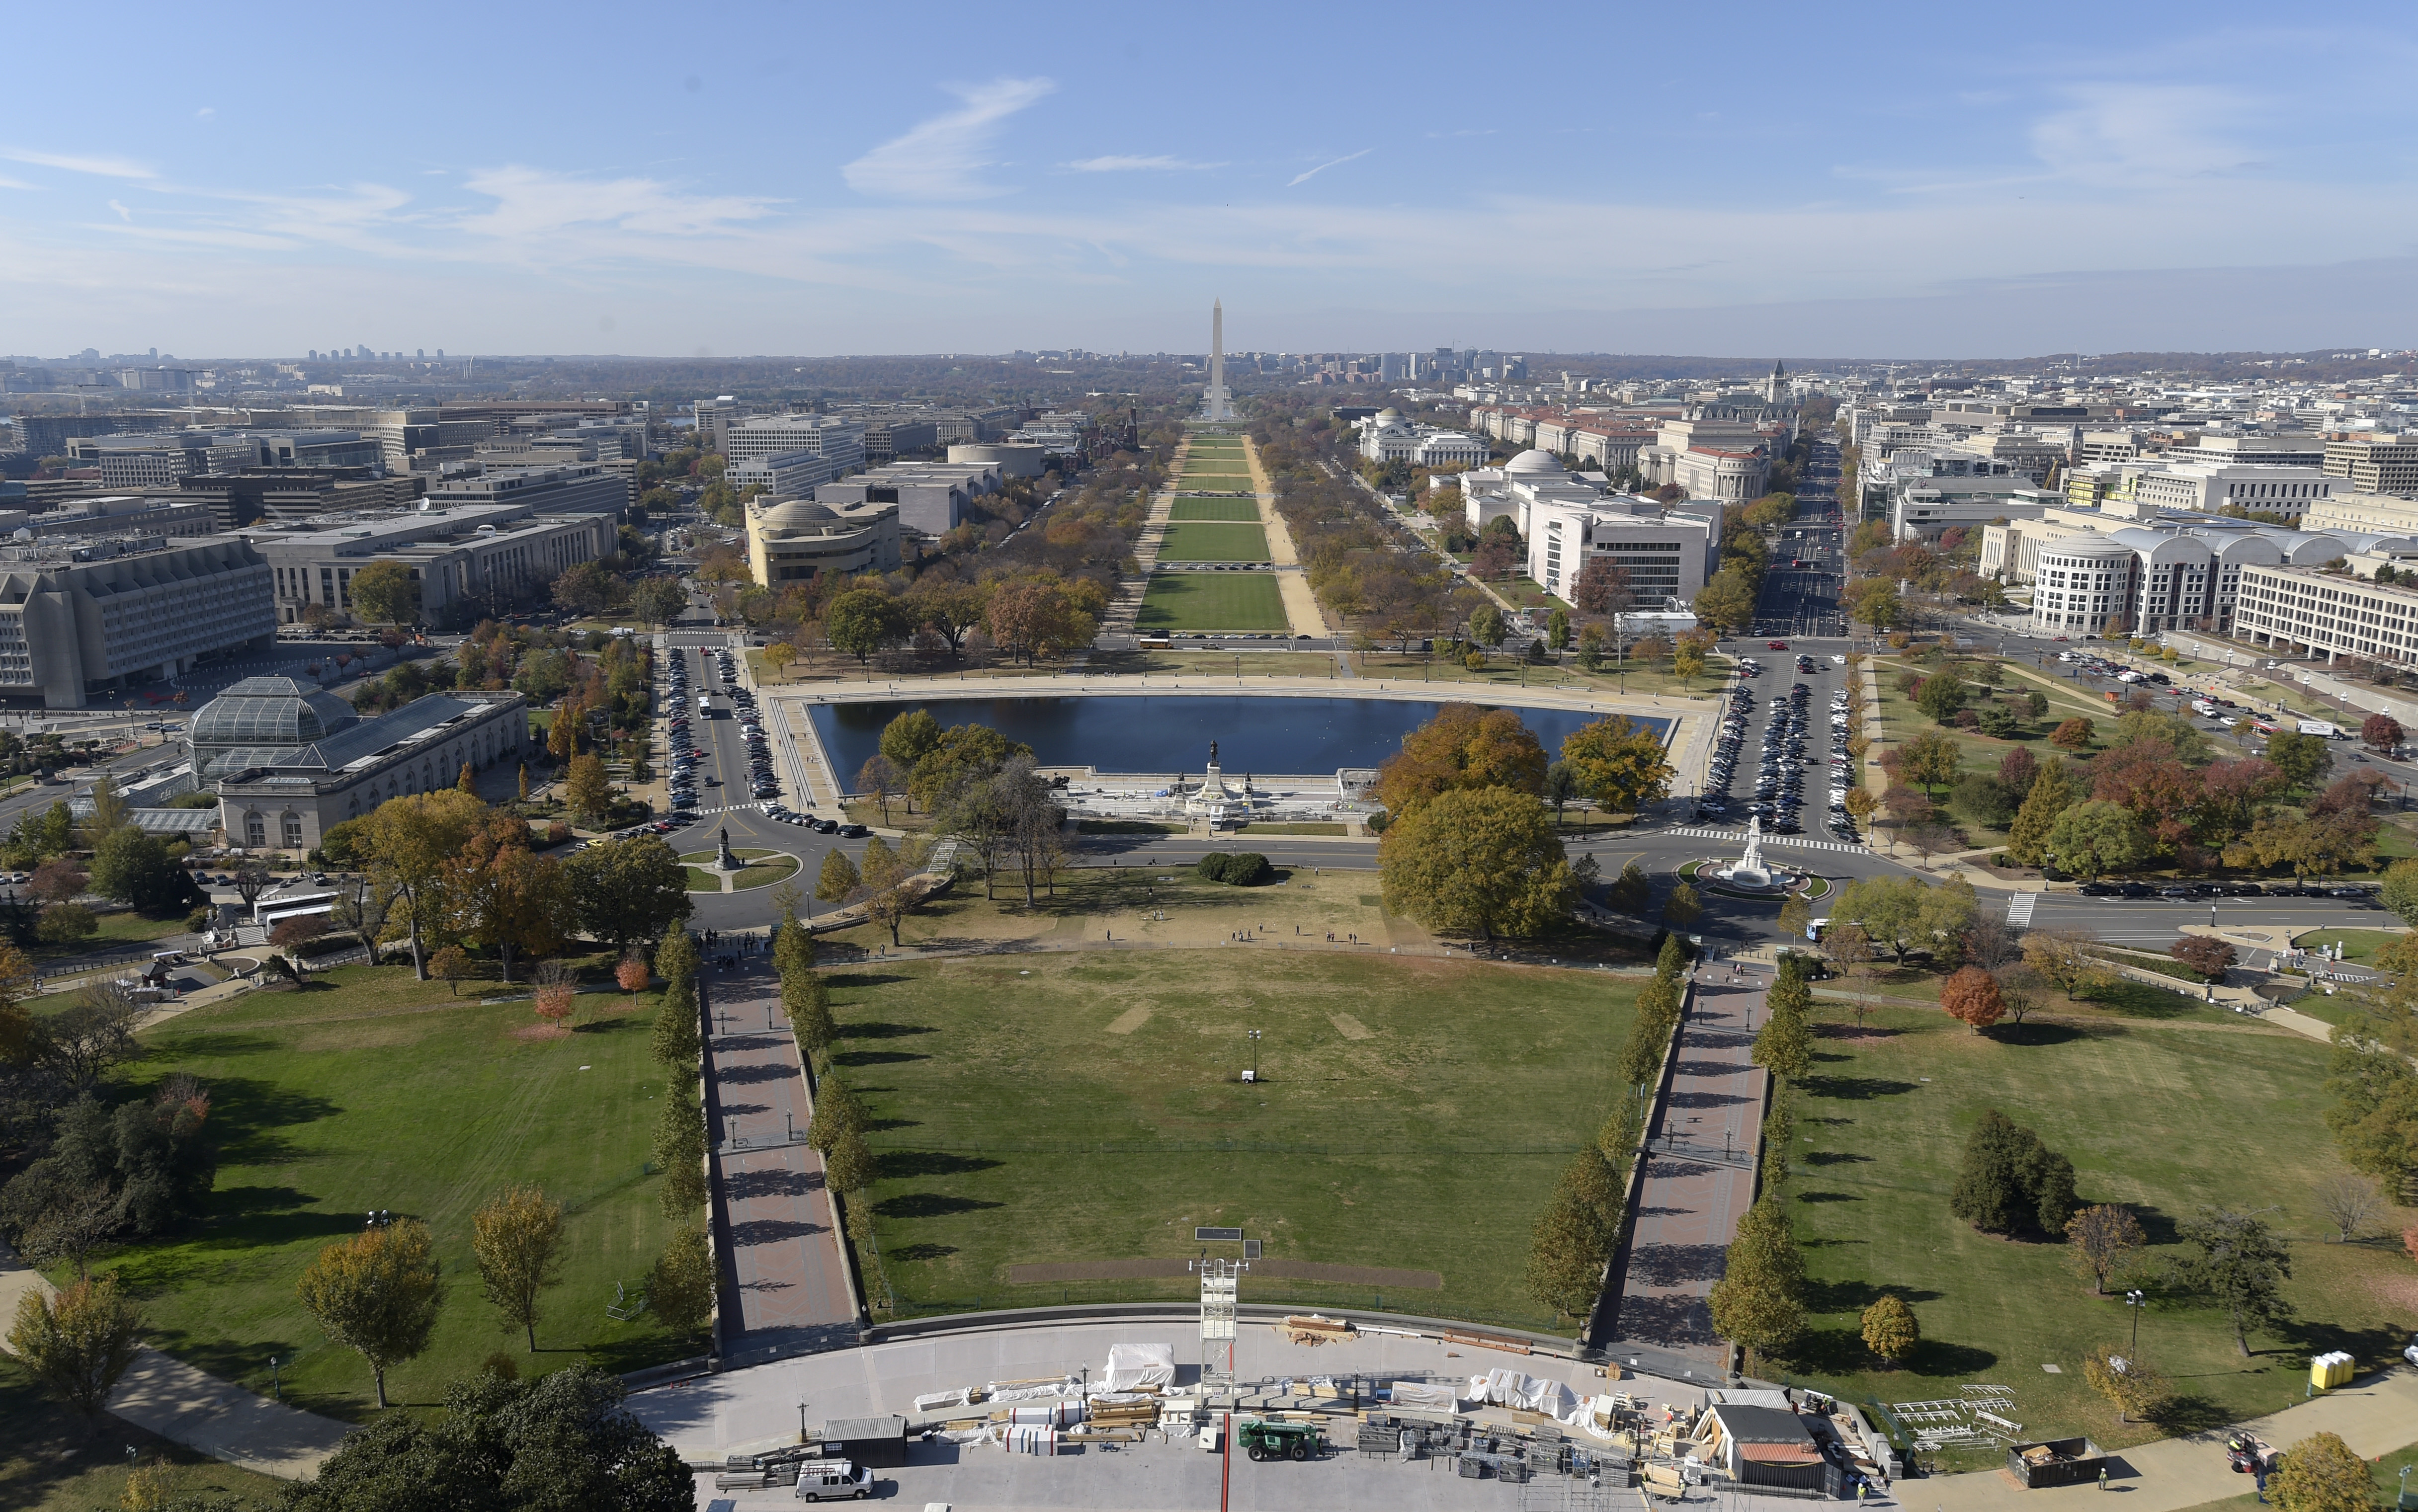 Inauguration Day 2017 Survival Guide: Street closures ...